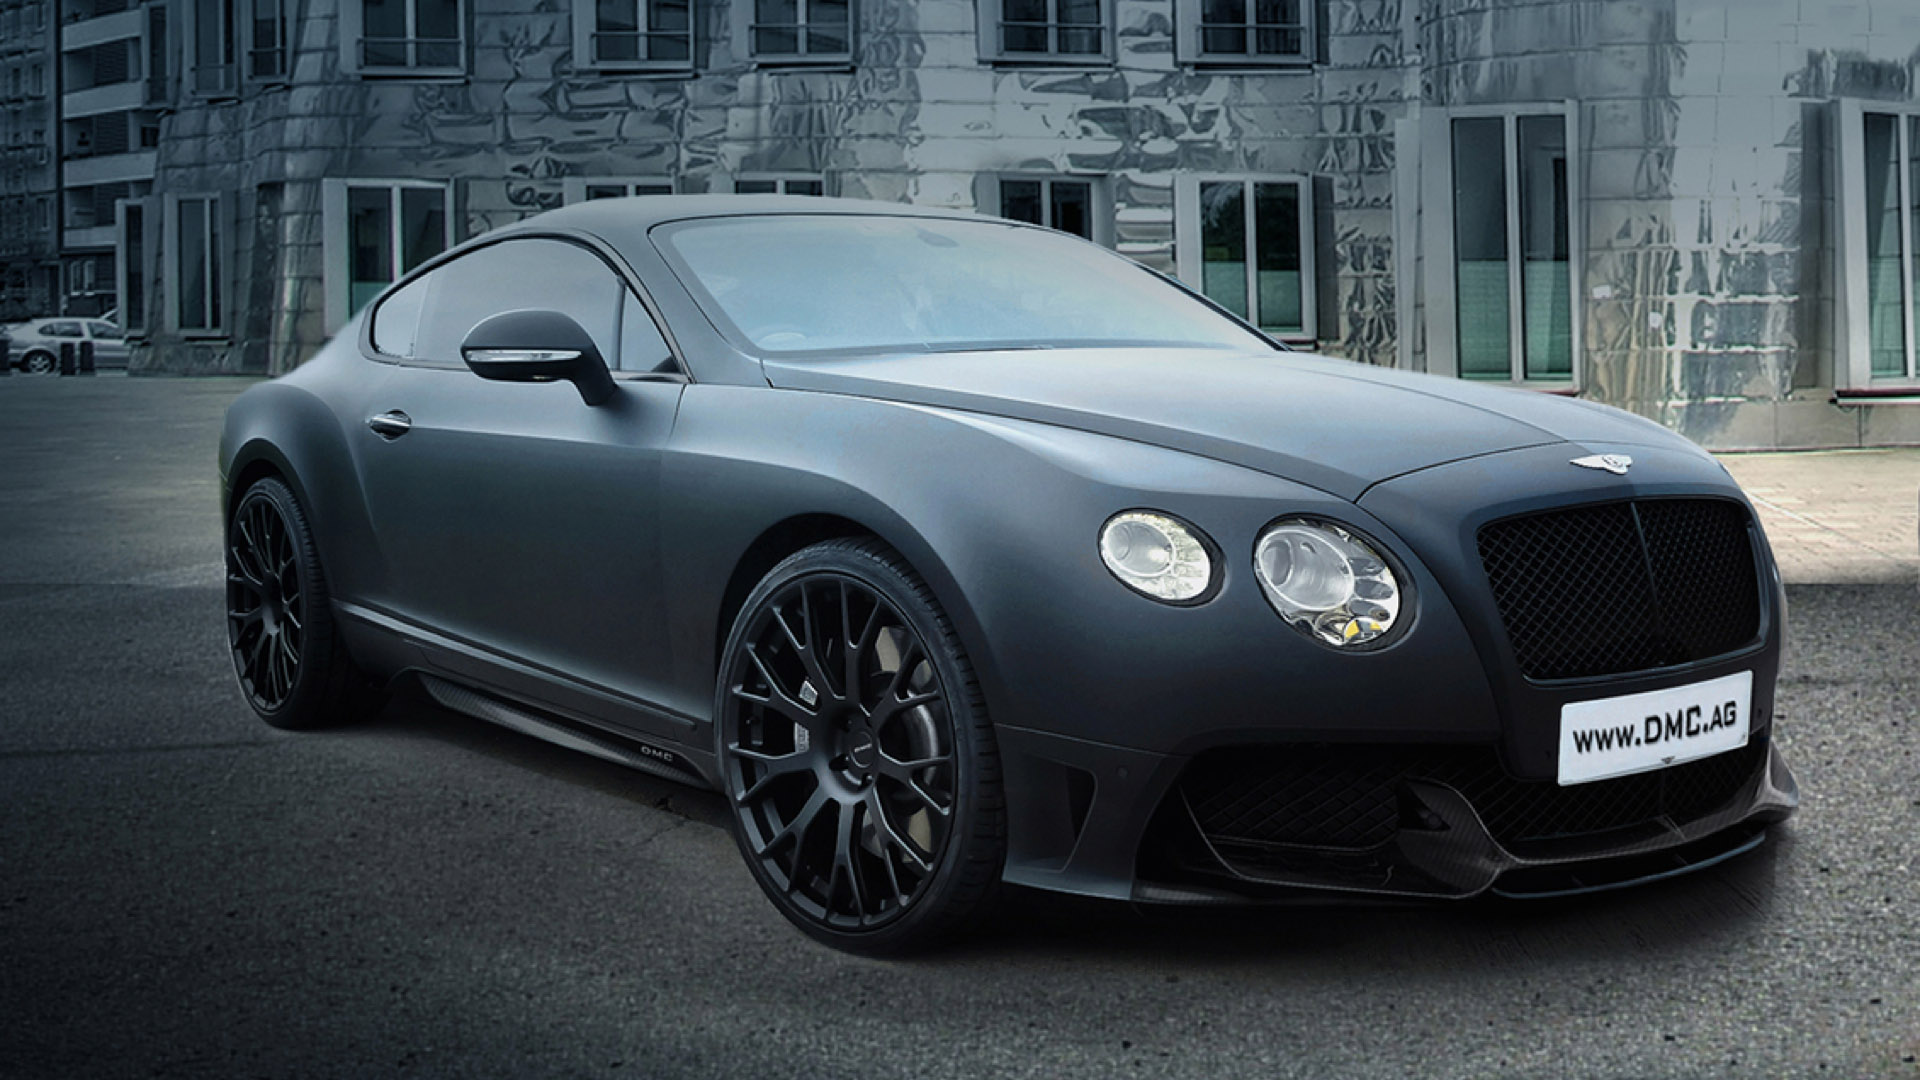 Dmc impress with bentley continental gt duro china edition for The bentley